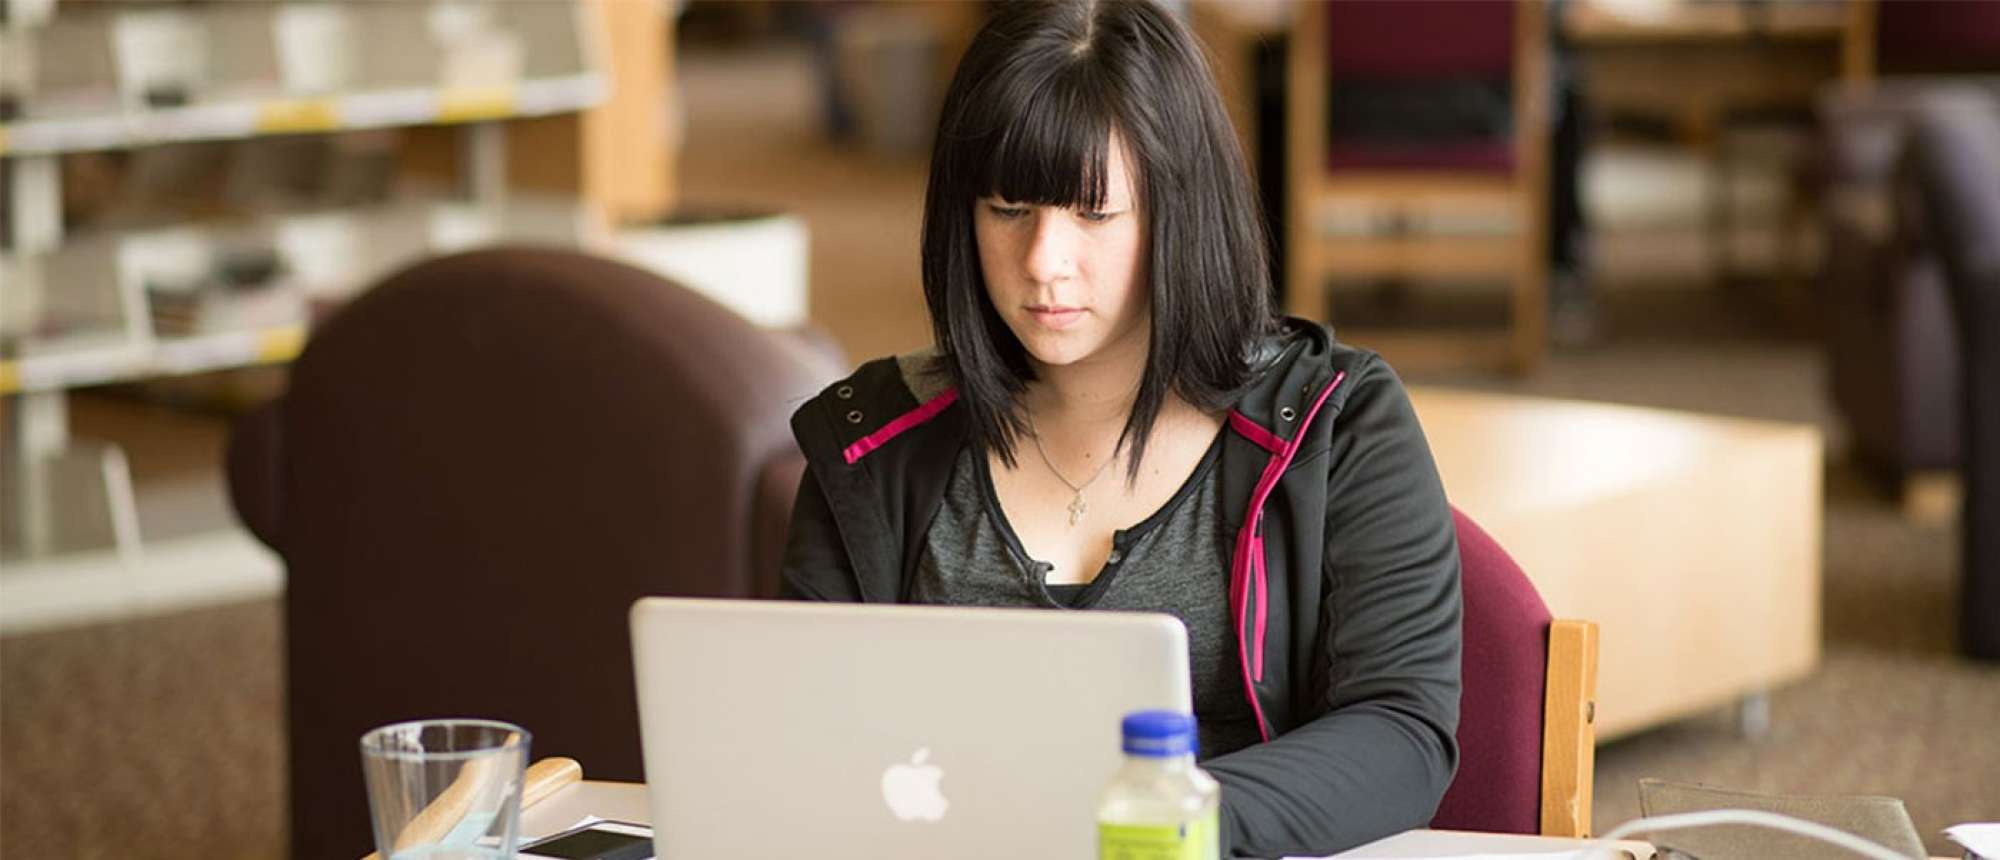 Female student using a laptop computer.